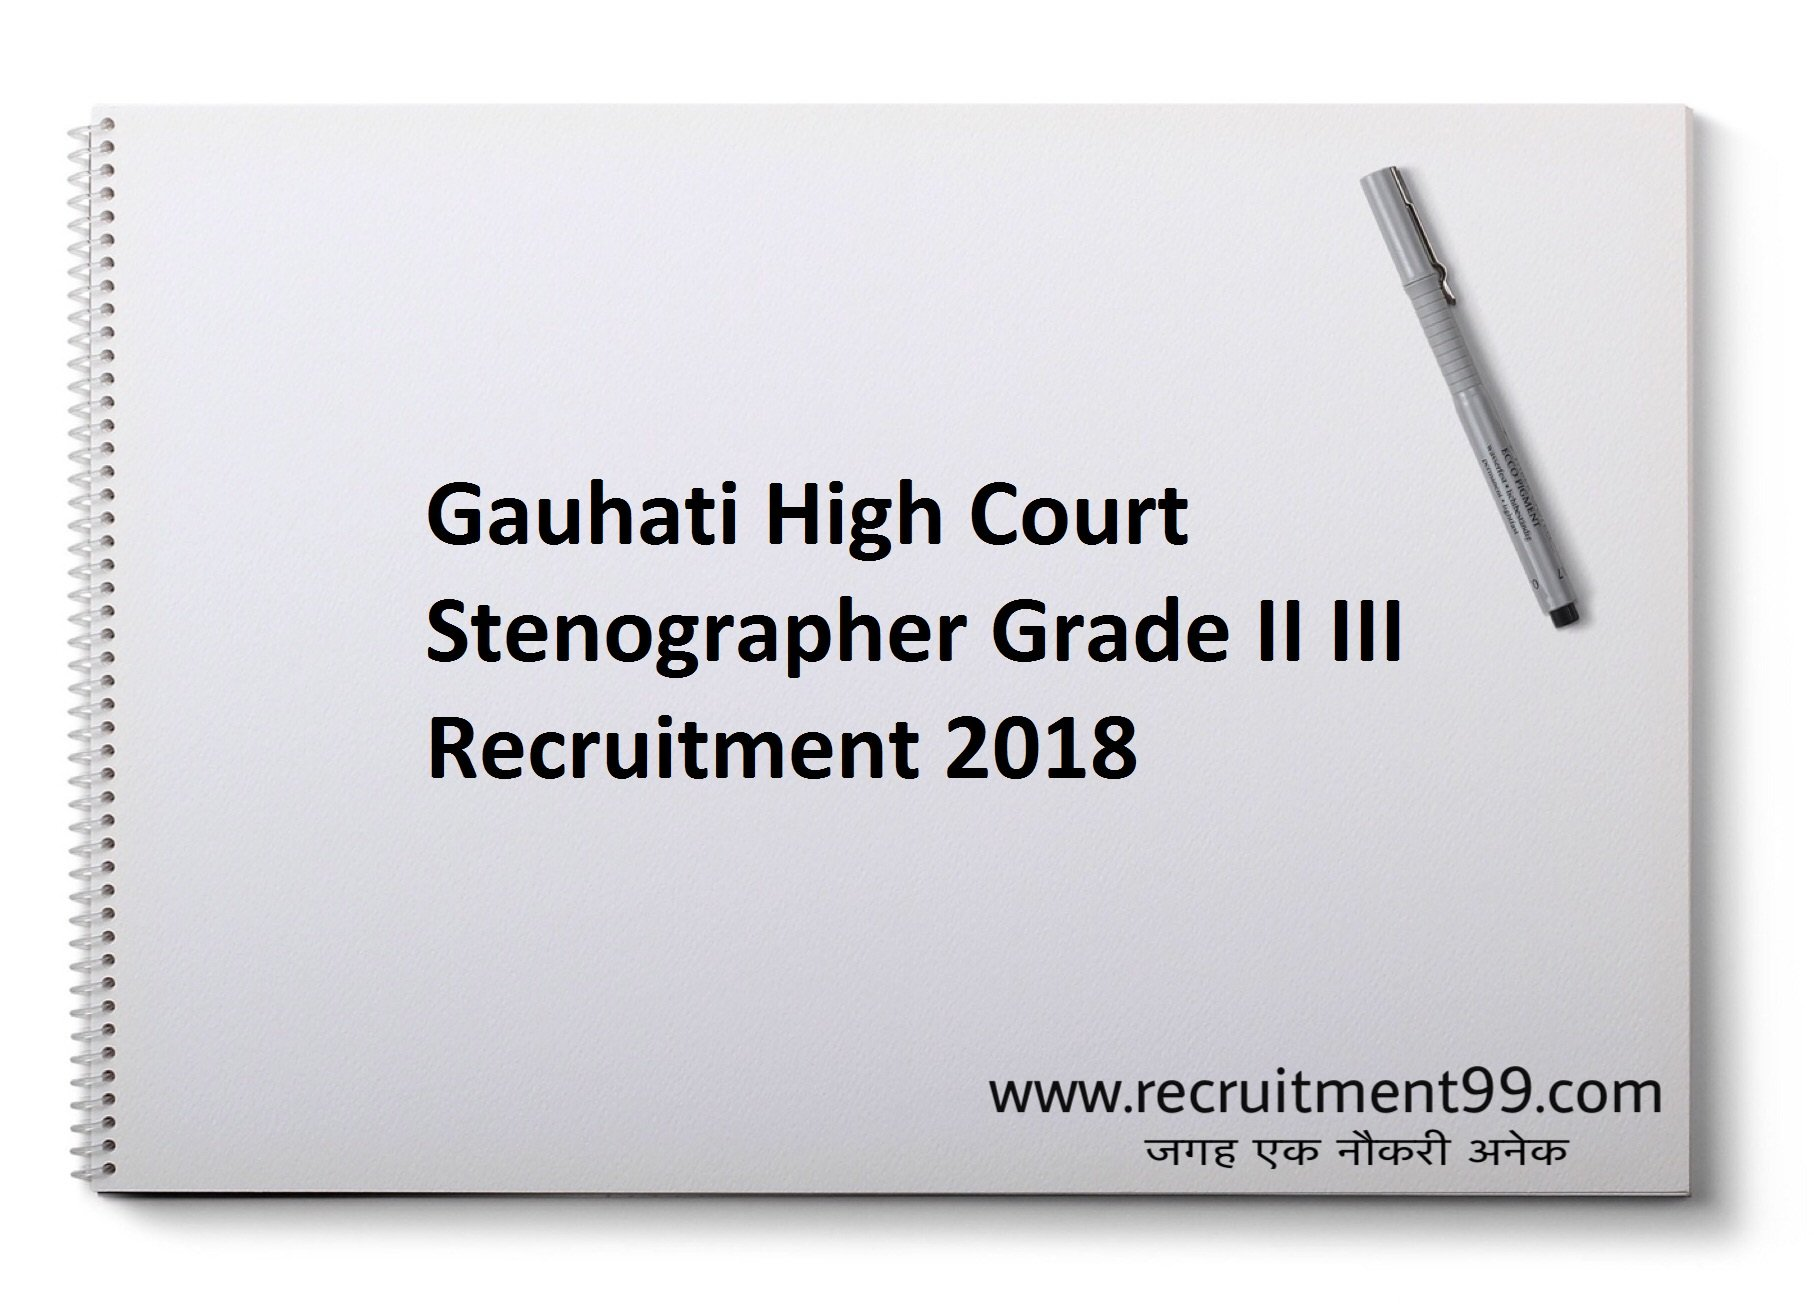 Gauhati High Court Stenographer Grade II III Recruitment Admit Card & Result 2018